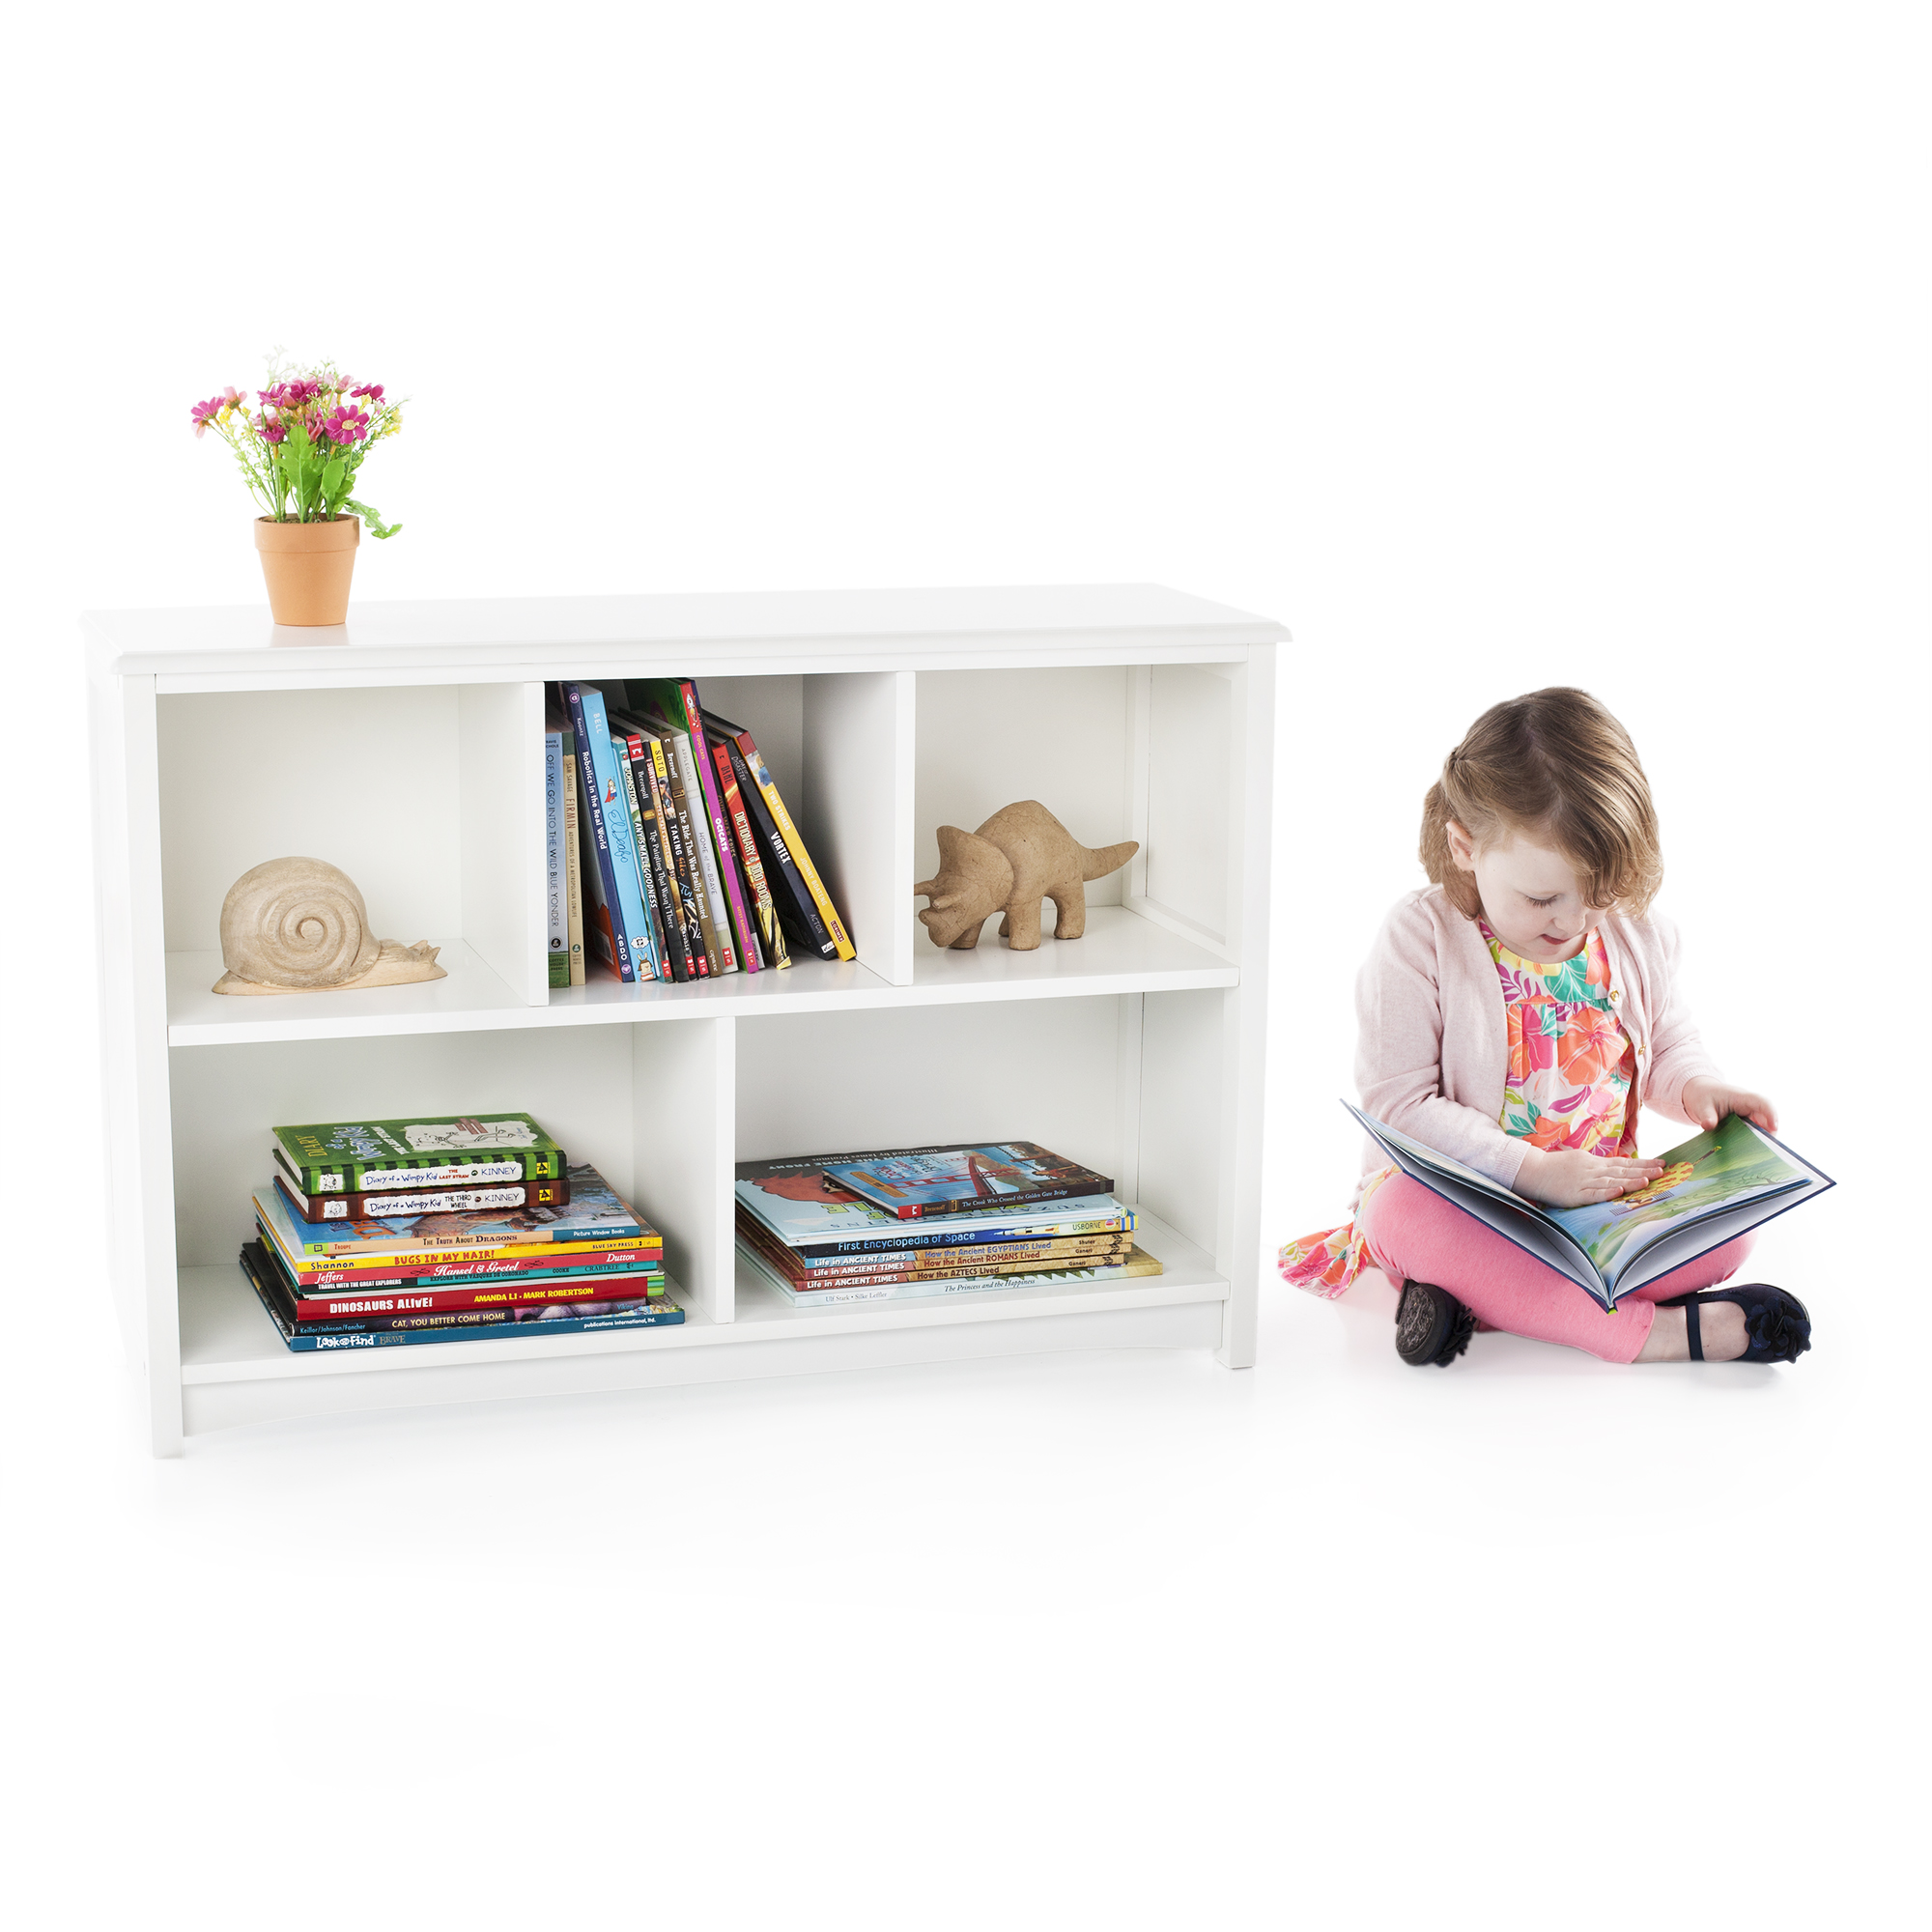 Guidecraft Classic Kids Bookshelf, 2-Tier, Multiple Colors